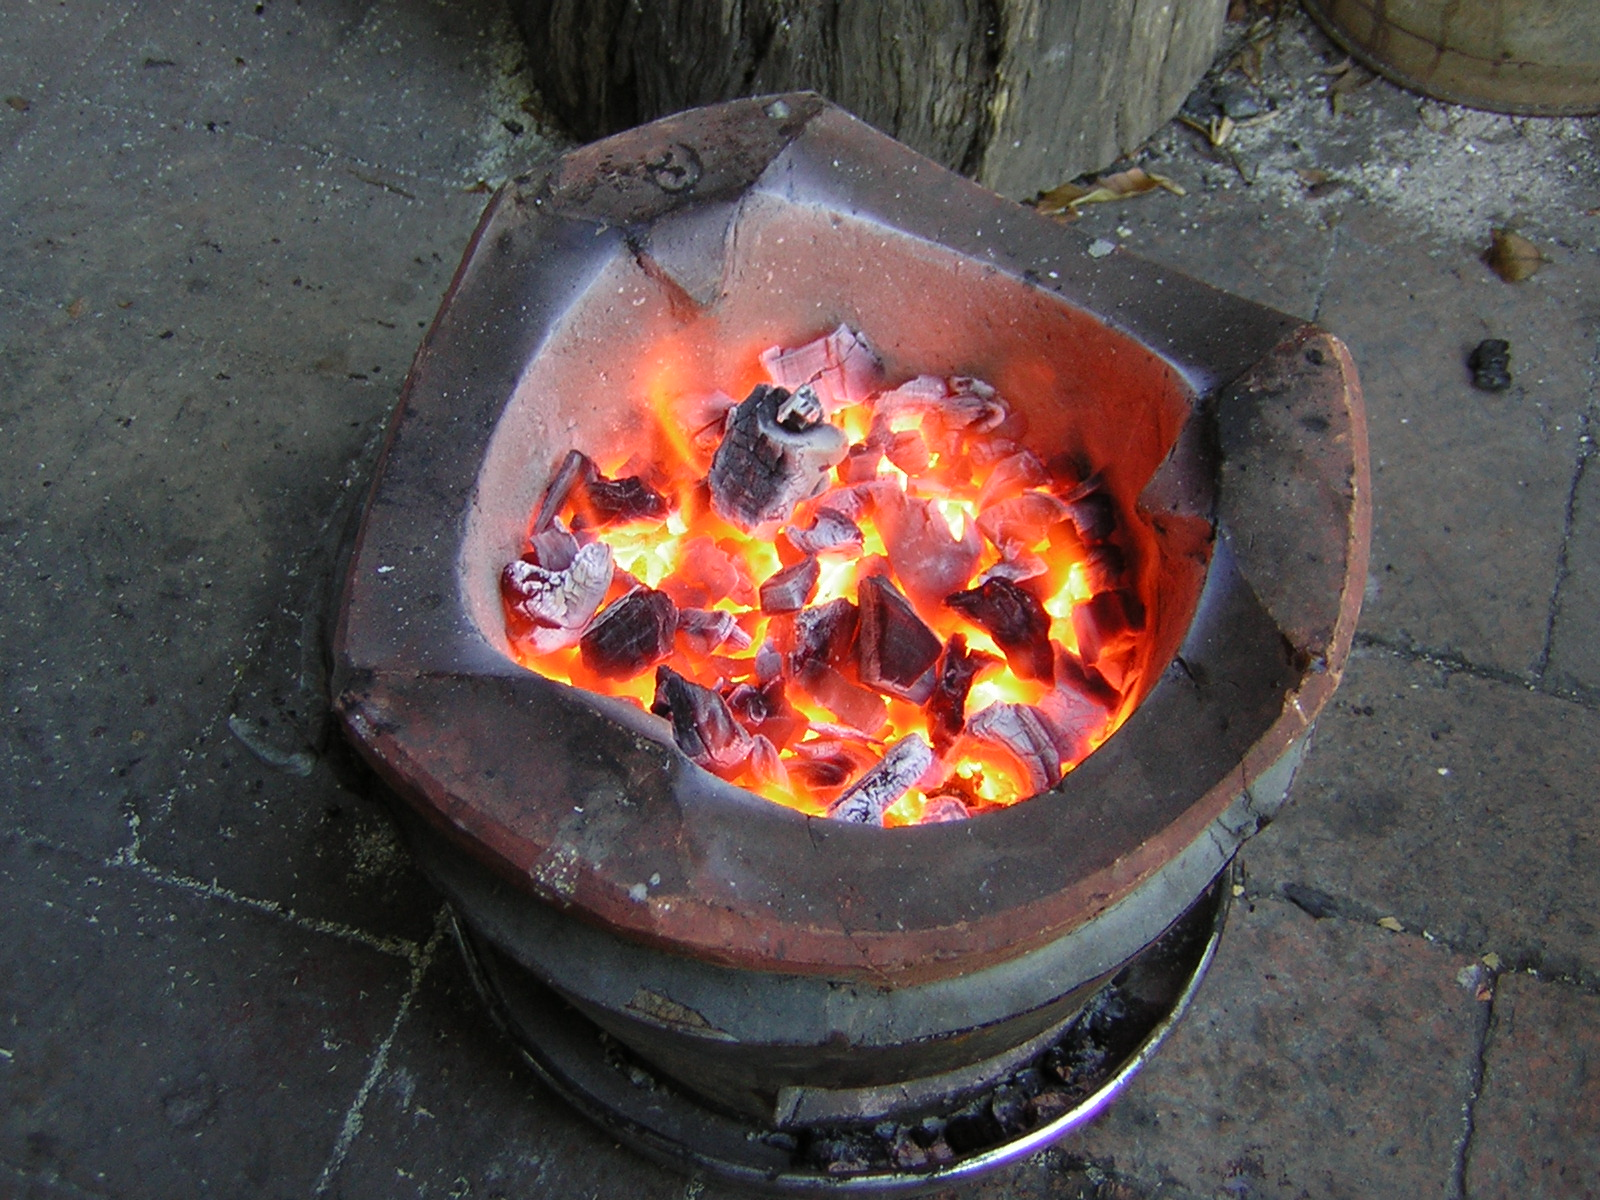 Bruce Teakle S Pages Cooking On A Thai Charcoal Stove